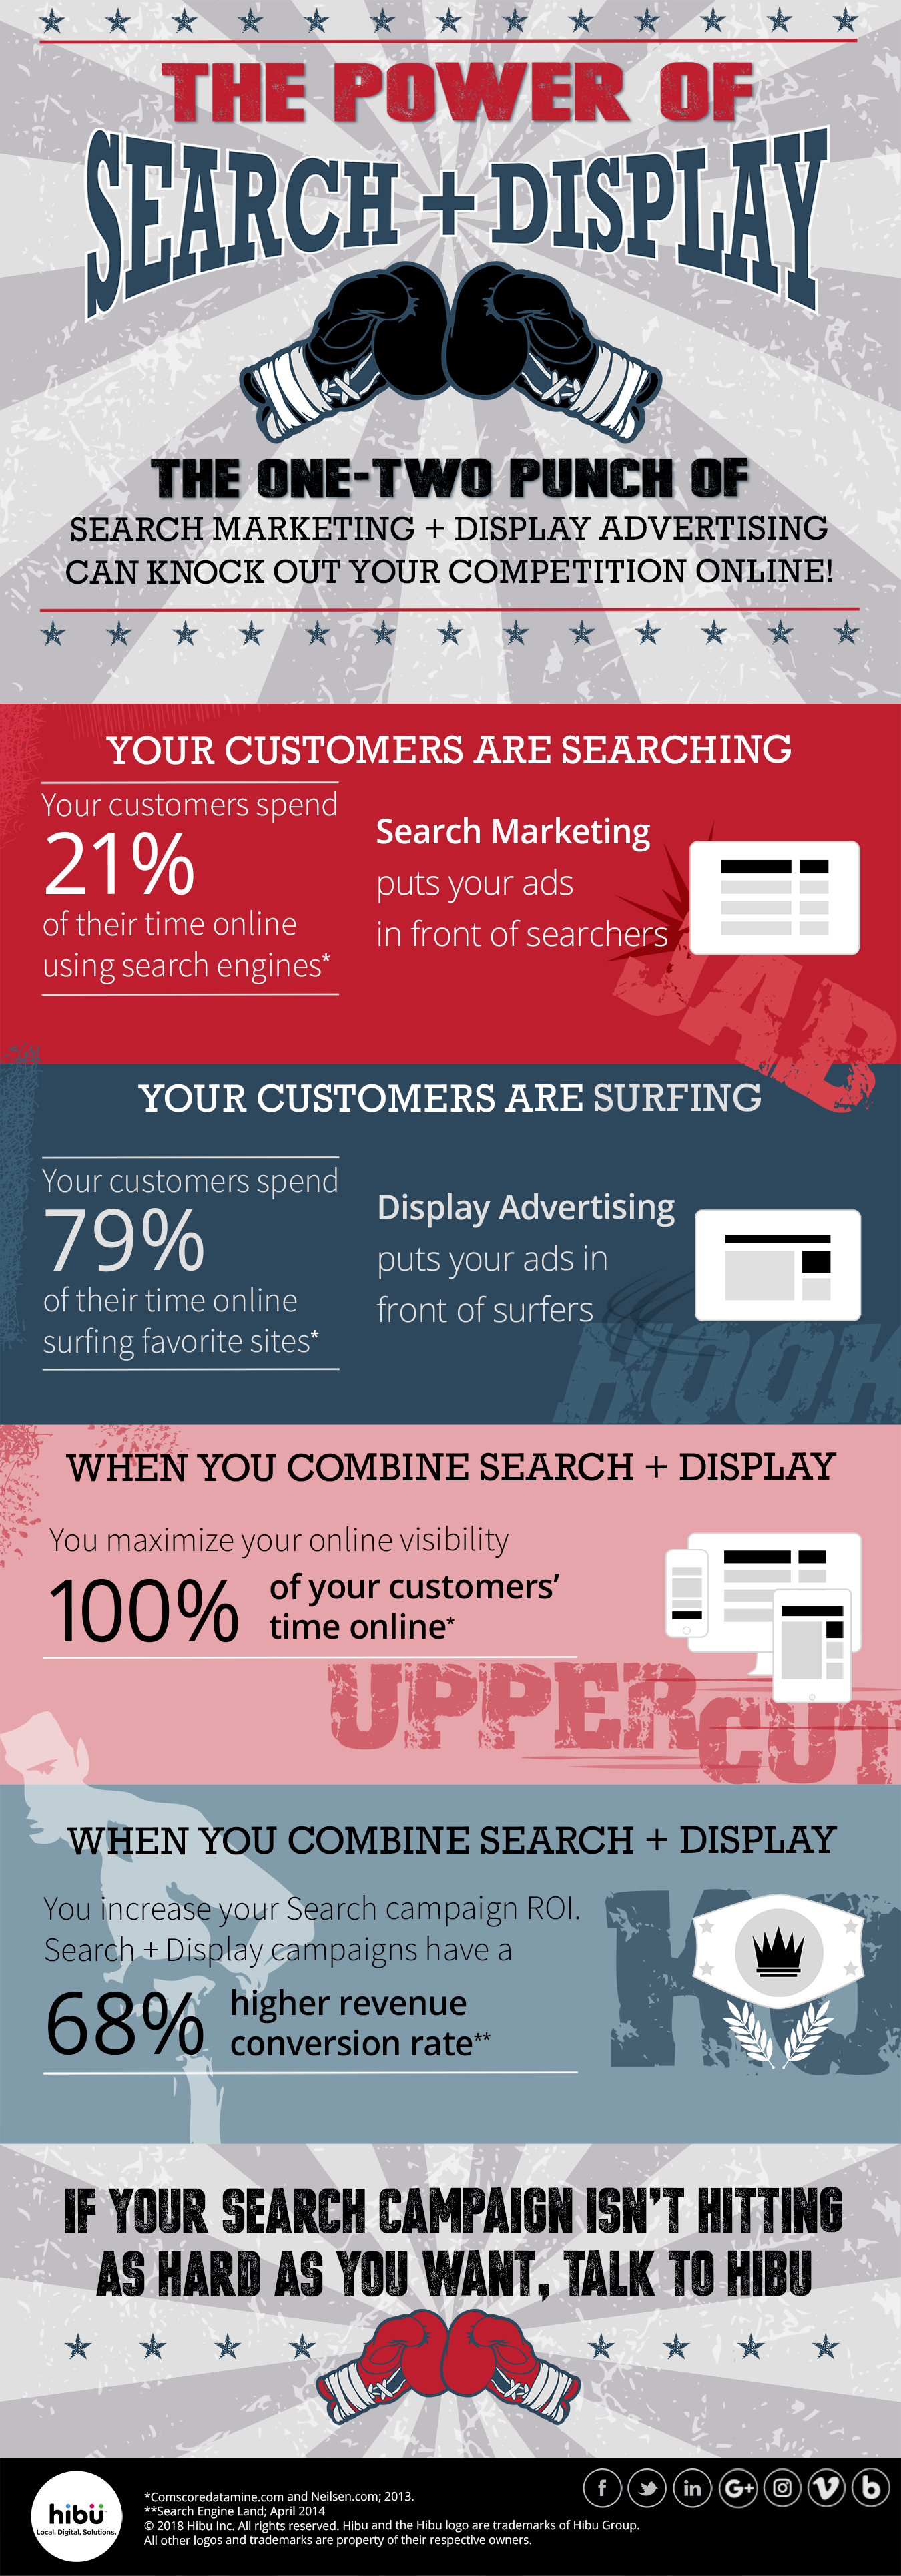 Infographic by Hibu - The Power of Search + Display